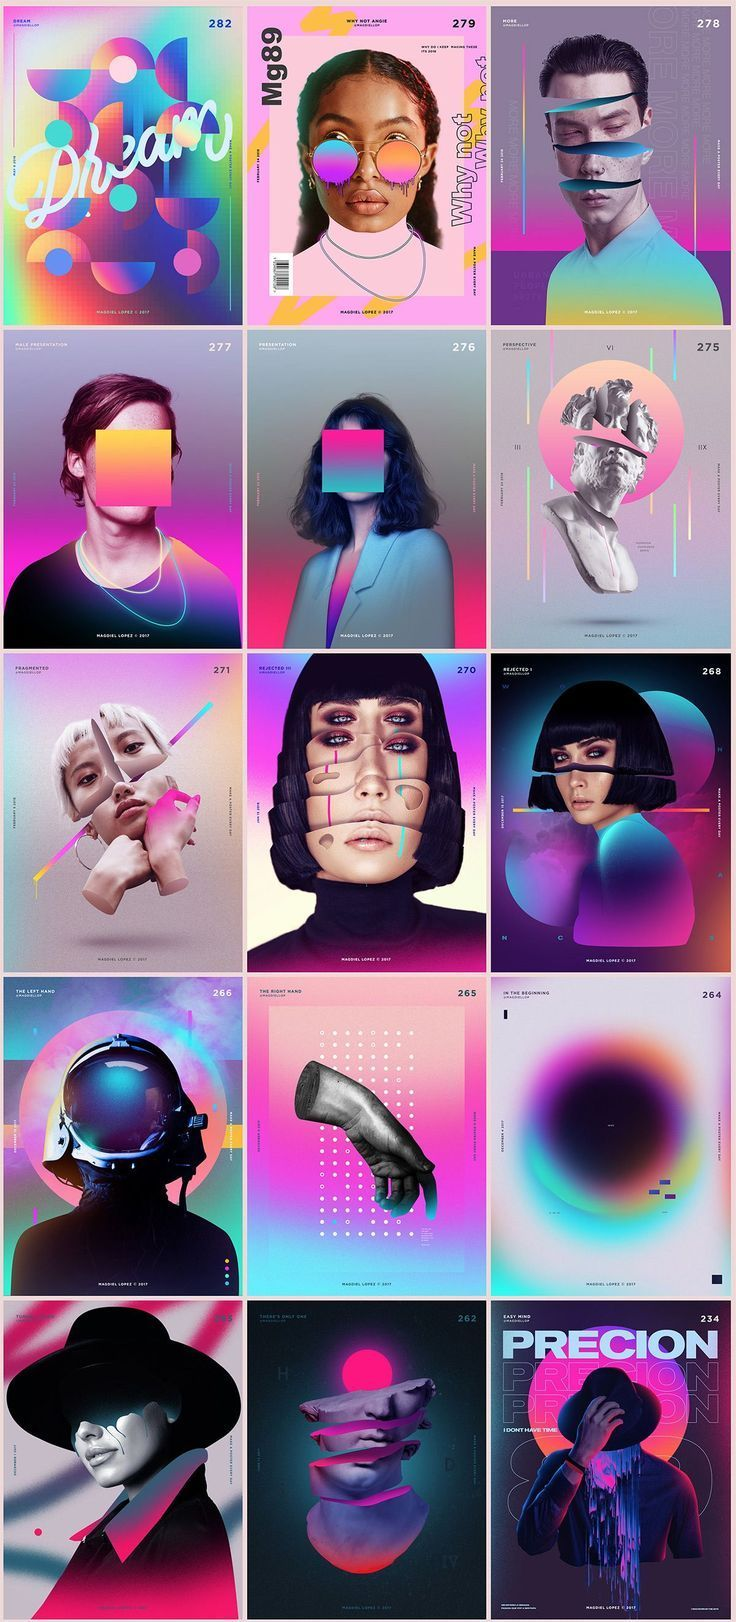 Grafikdesign-Trends 2018 Magdiel ist ein Künstler / Kreativdirektor, der in … #graphicdesign